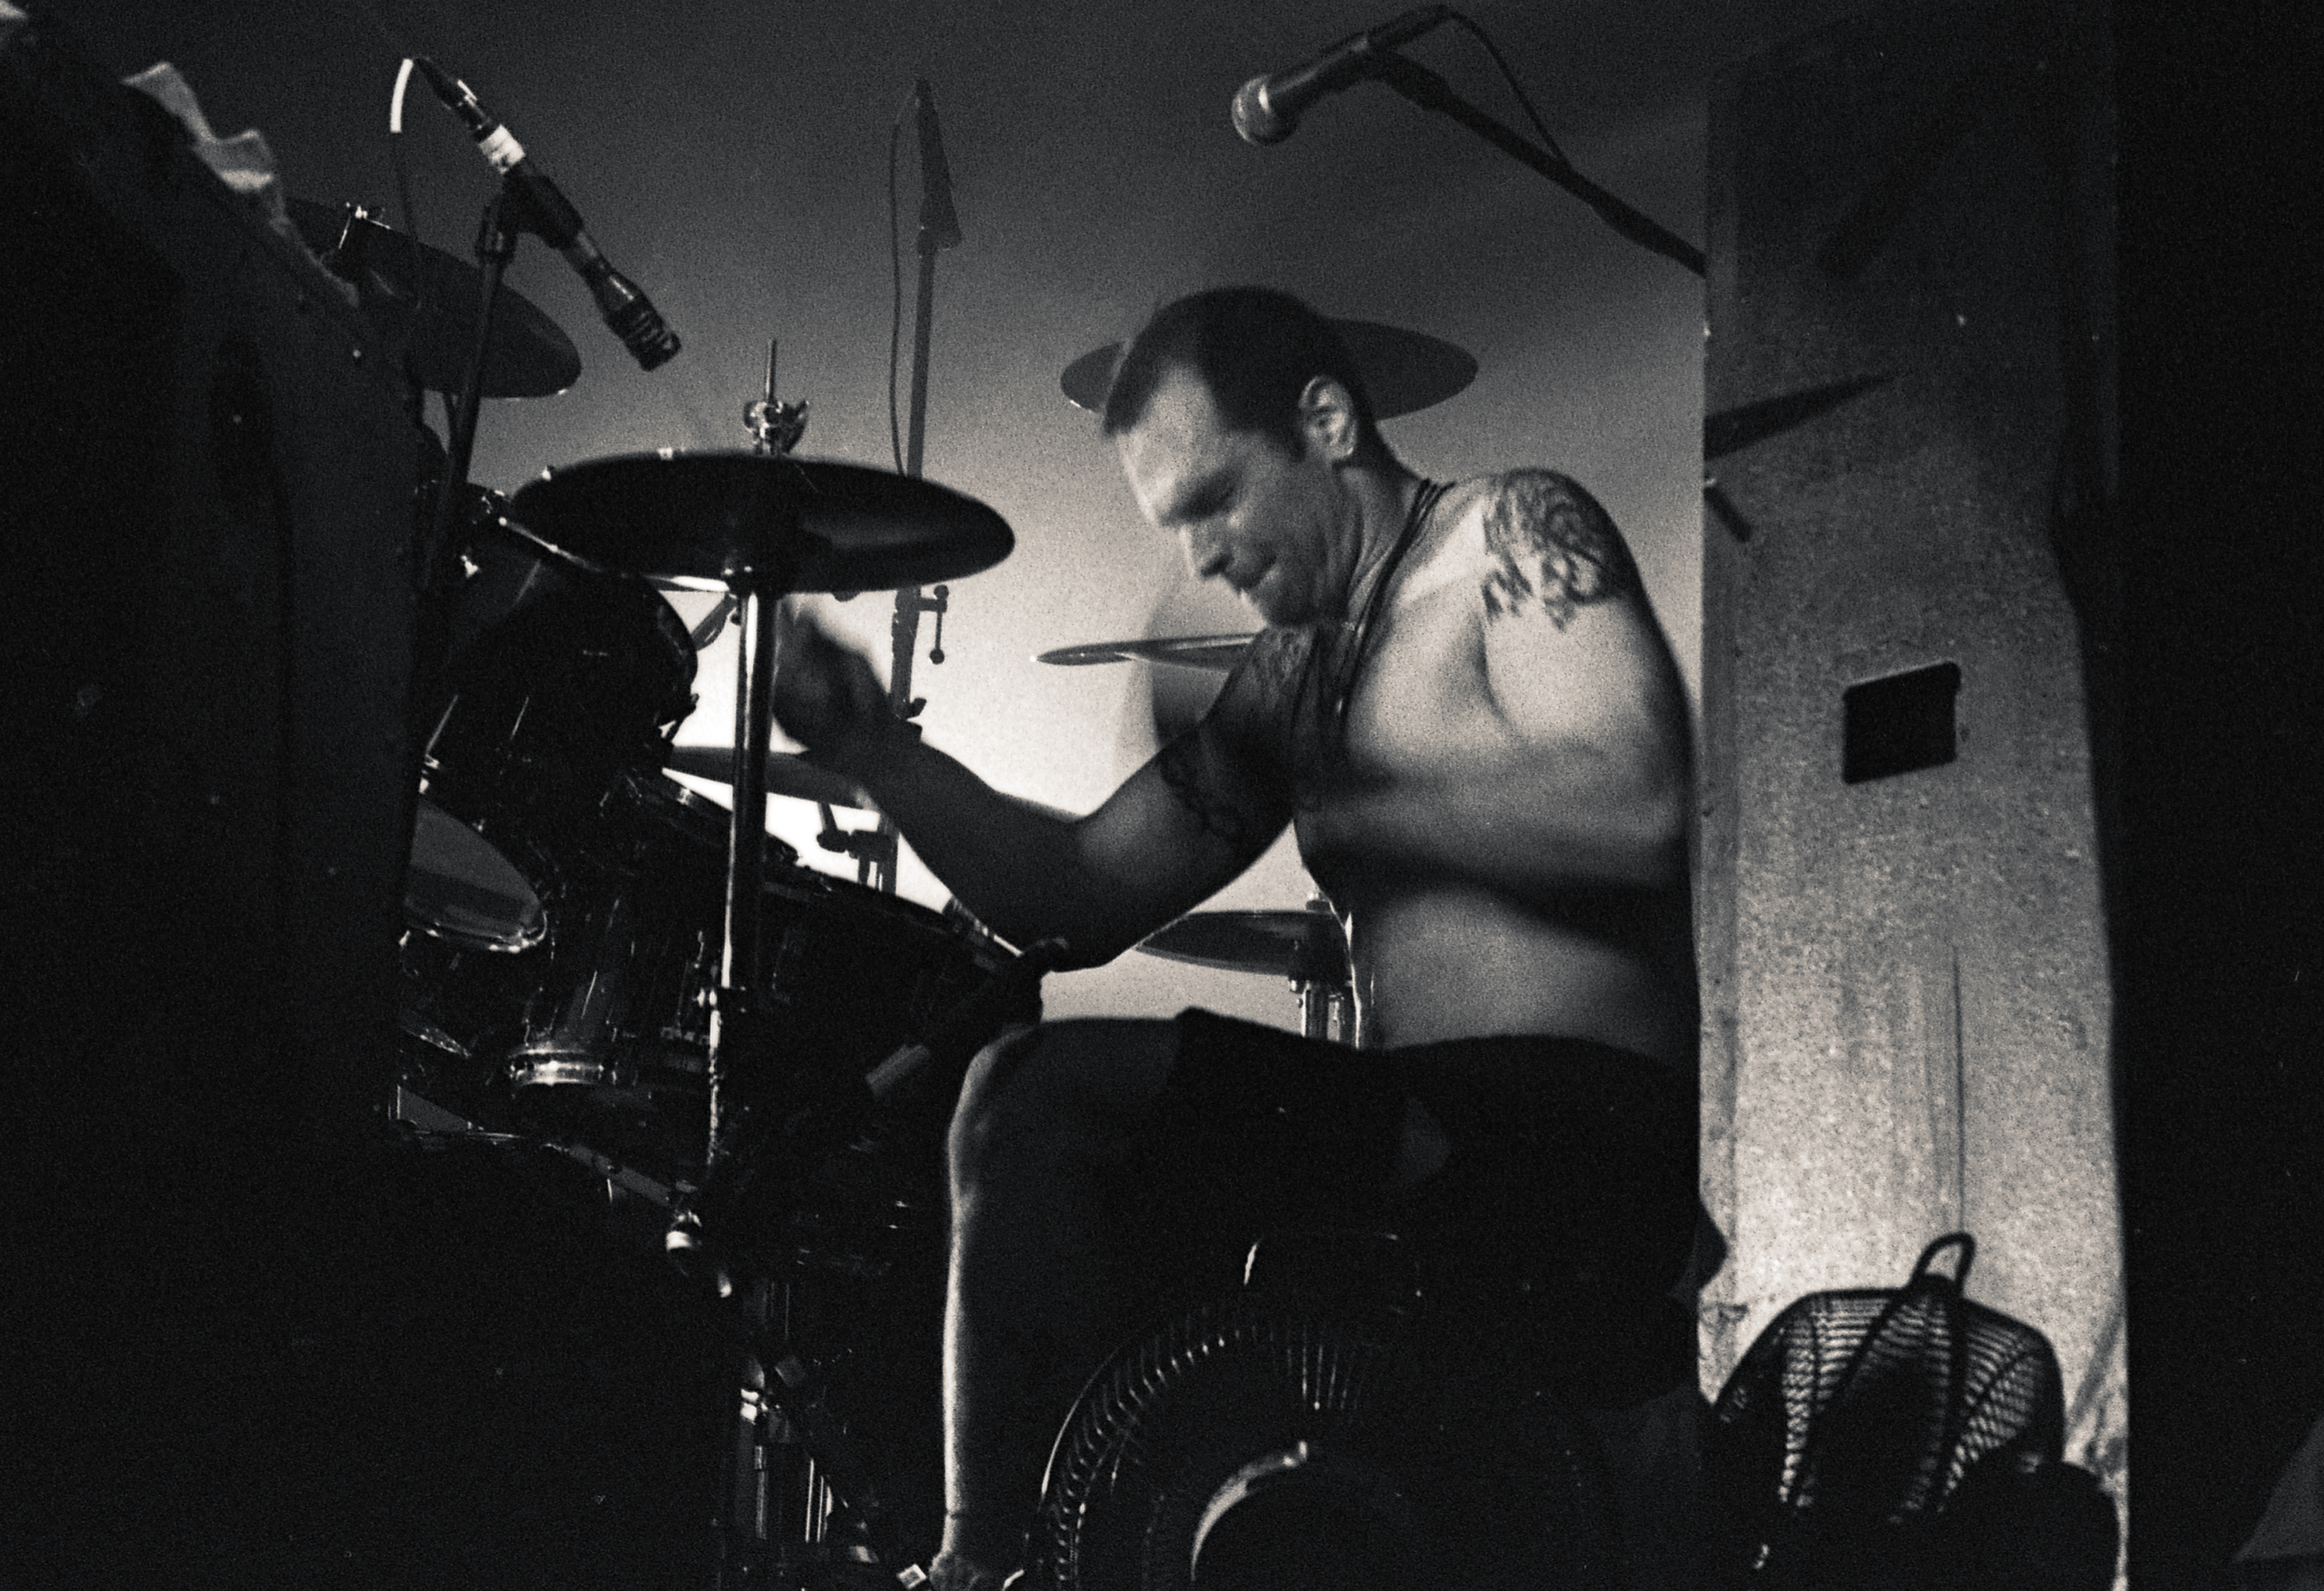 Ted Parsons, playing the drums